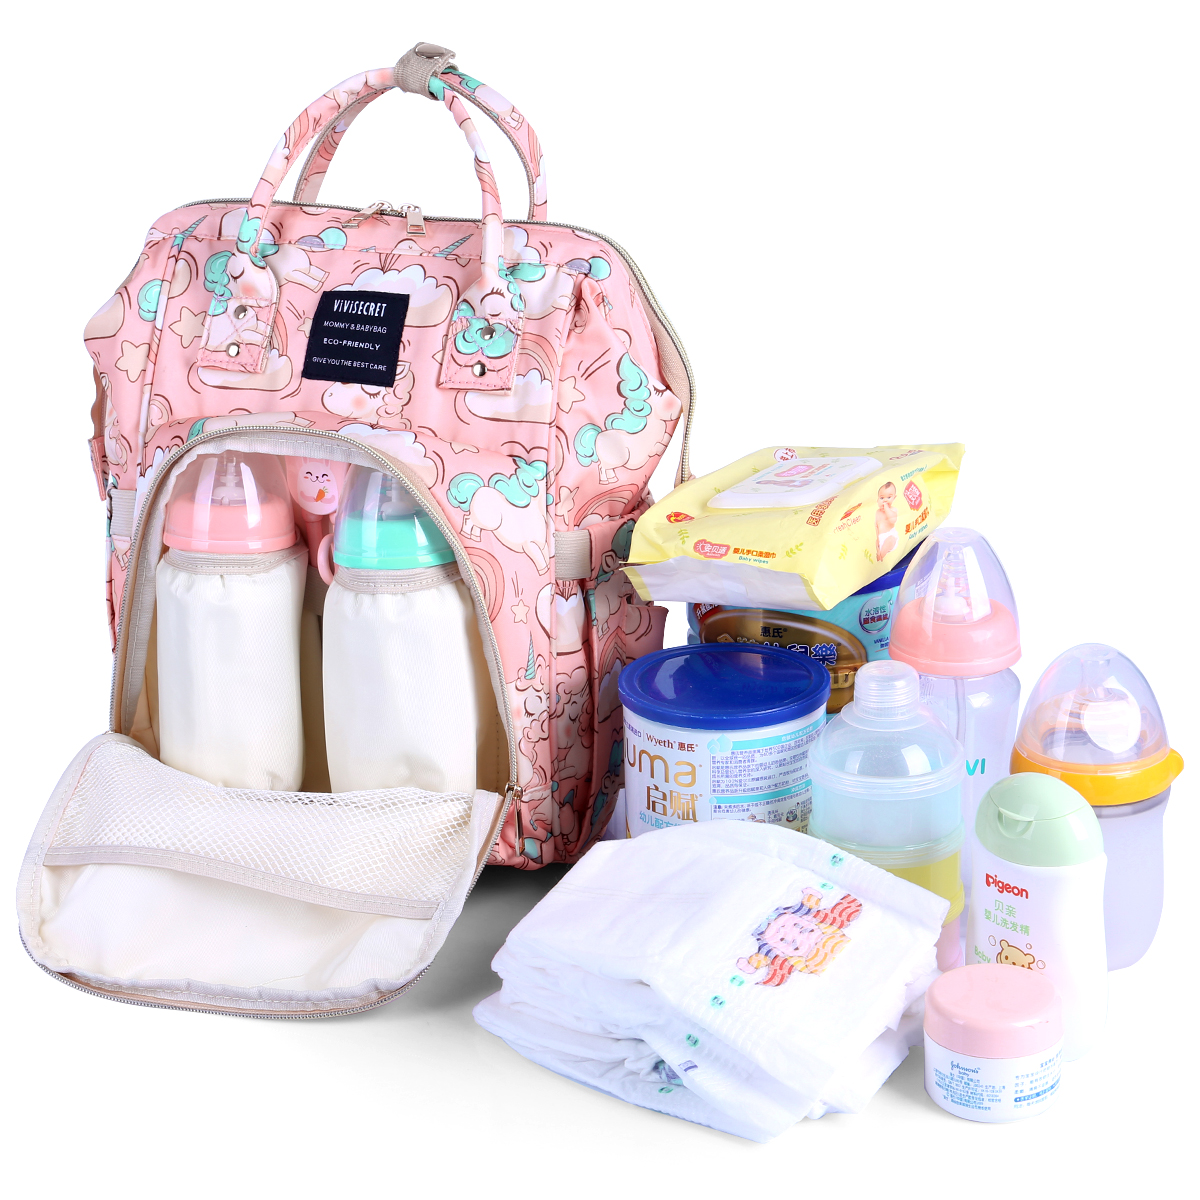 Hf9d08f4f06554003bc36eedd7aac6232Z Diaper Bag Backpack For Moms Waterproof Large Capacity Stroller Diaper Organizer Unicorn Maternity Bags Nappy Changing Baby Bag